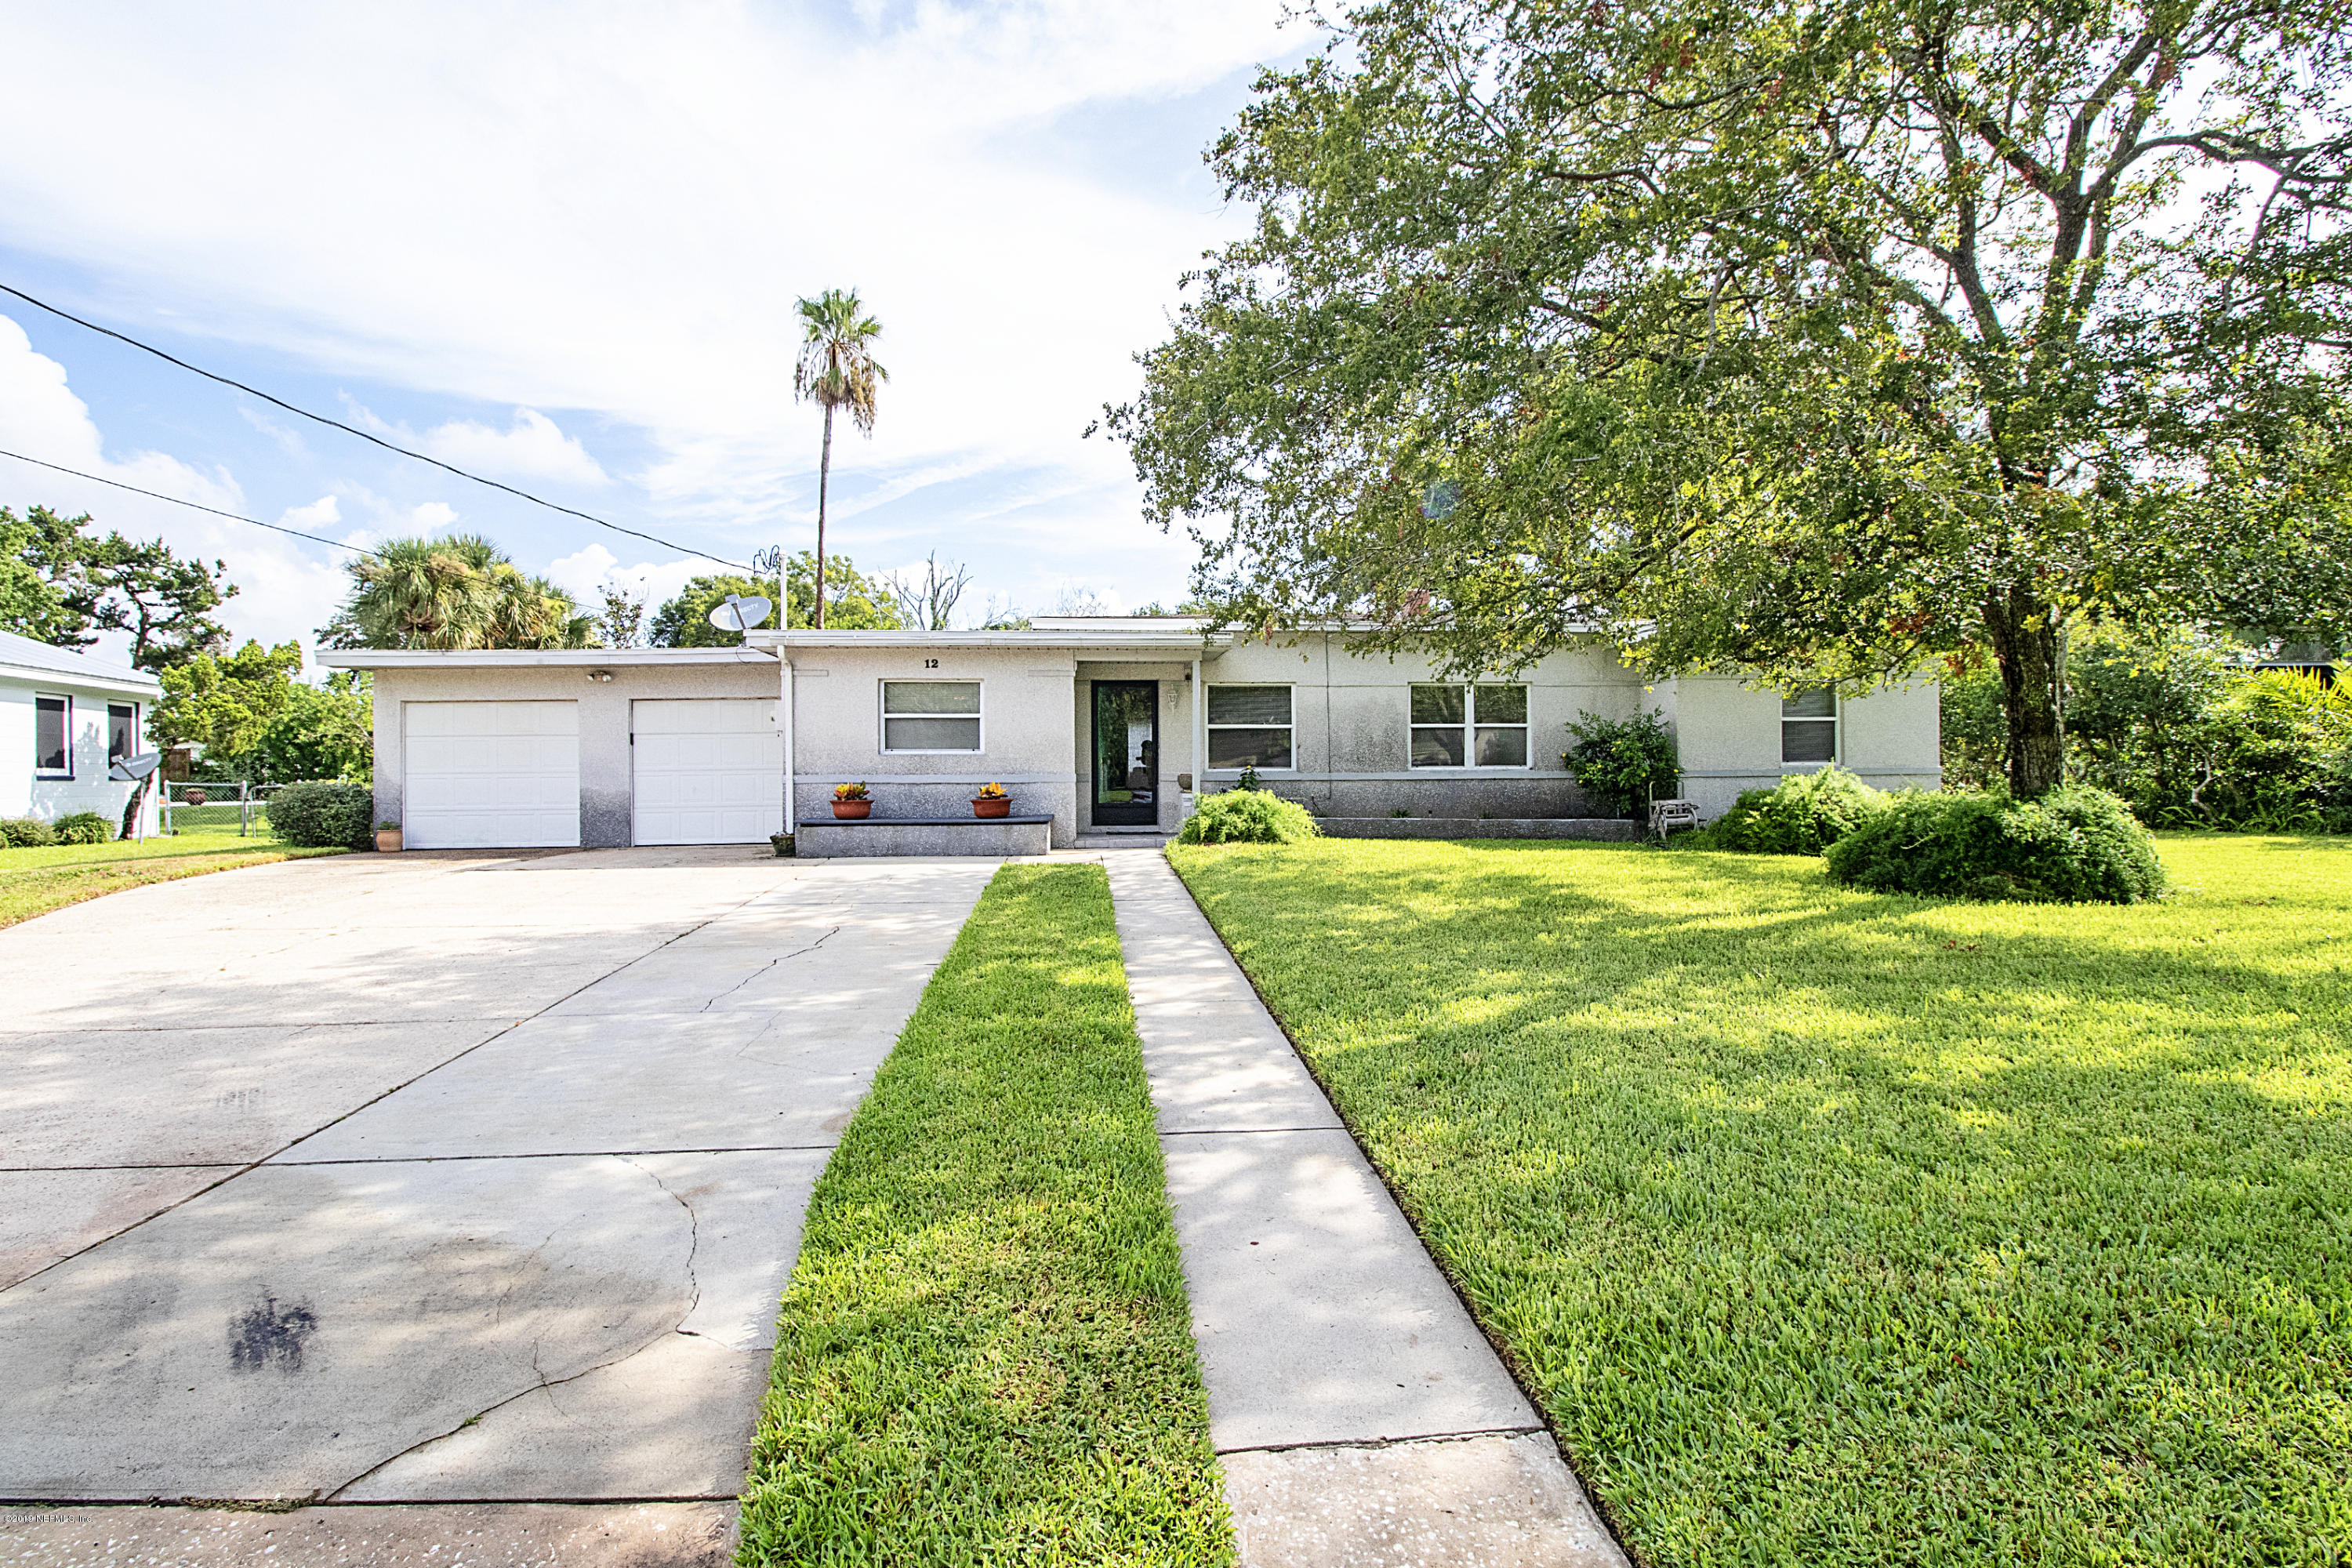 12 D'ALLYON AVE ST AUGUSTINE - 1